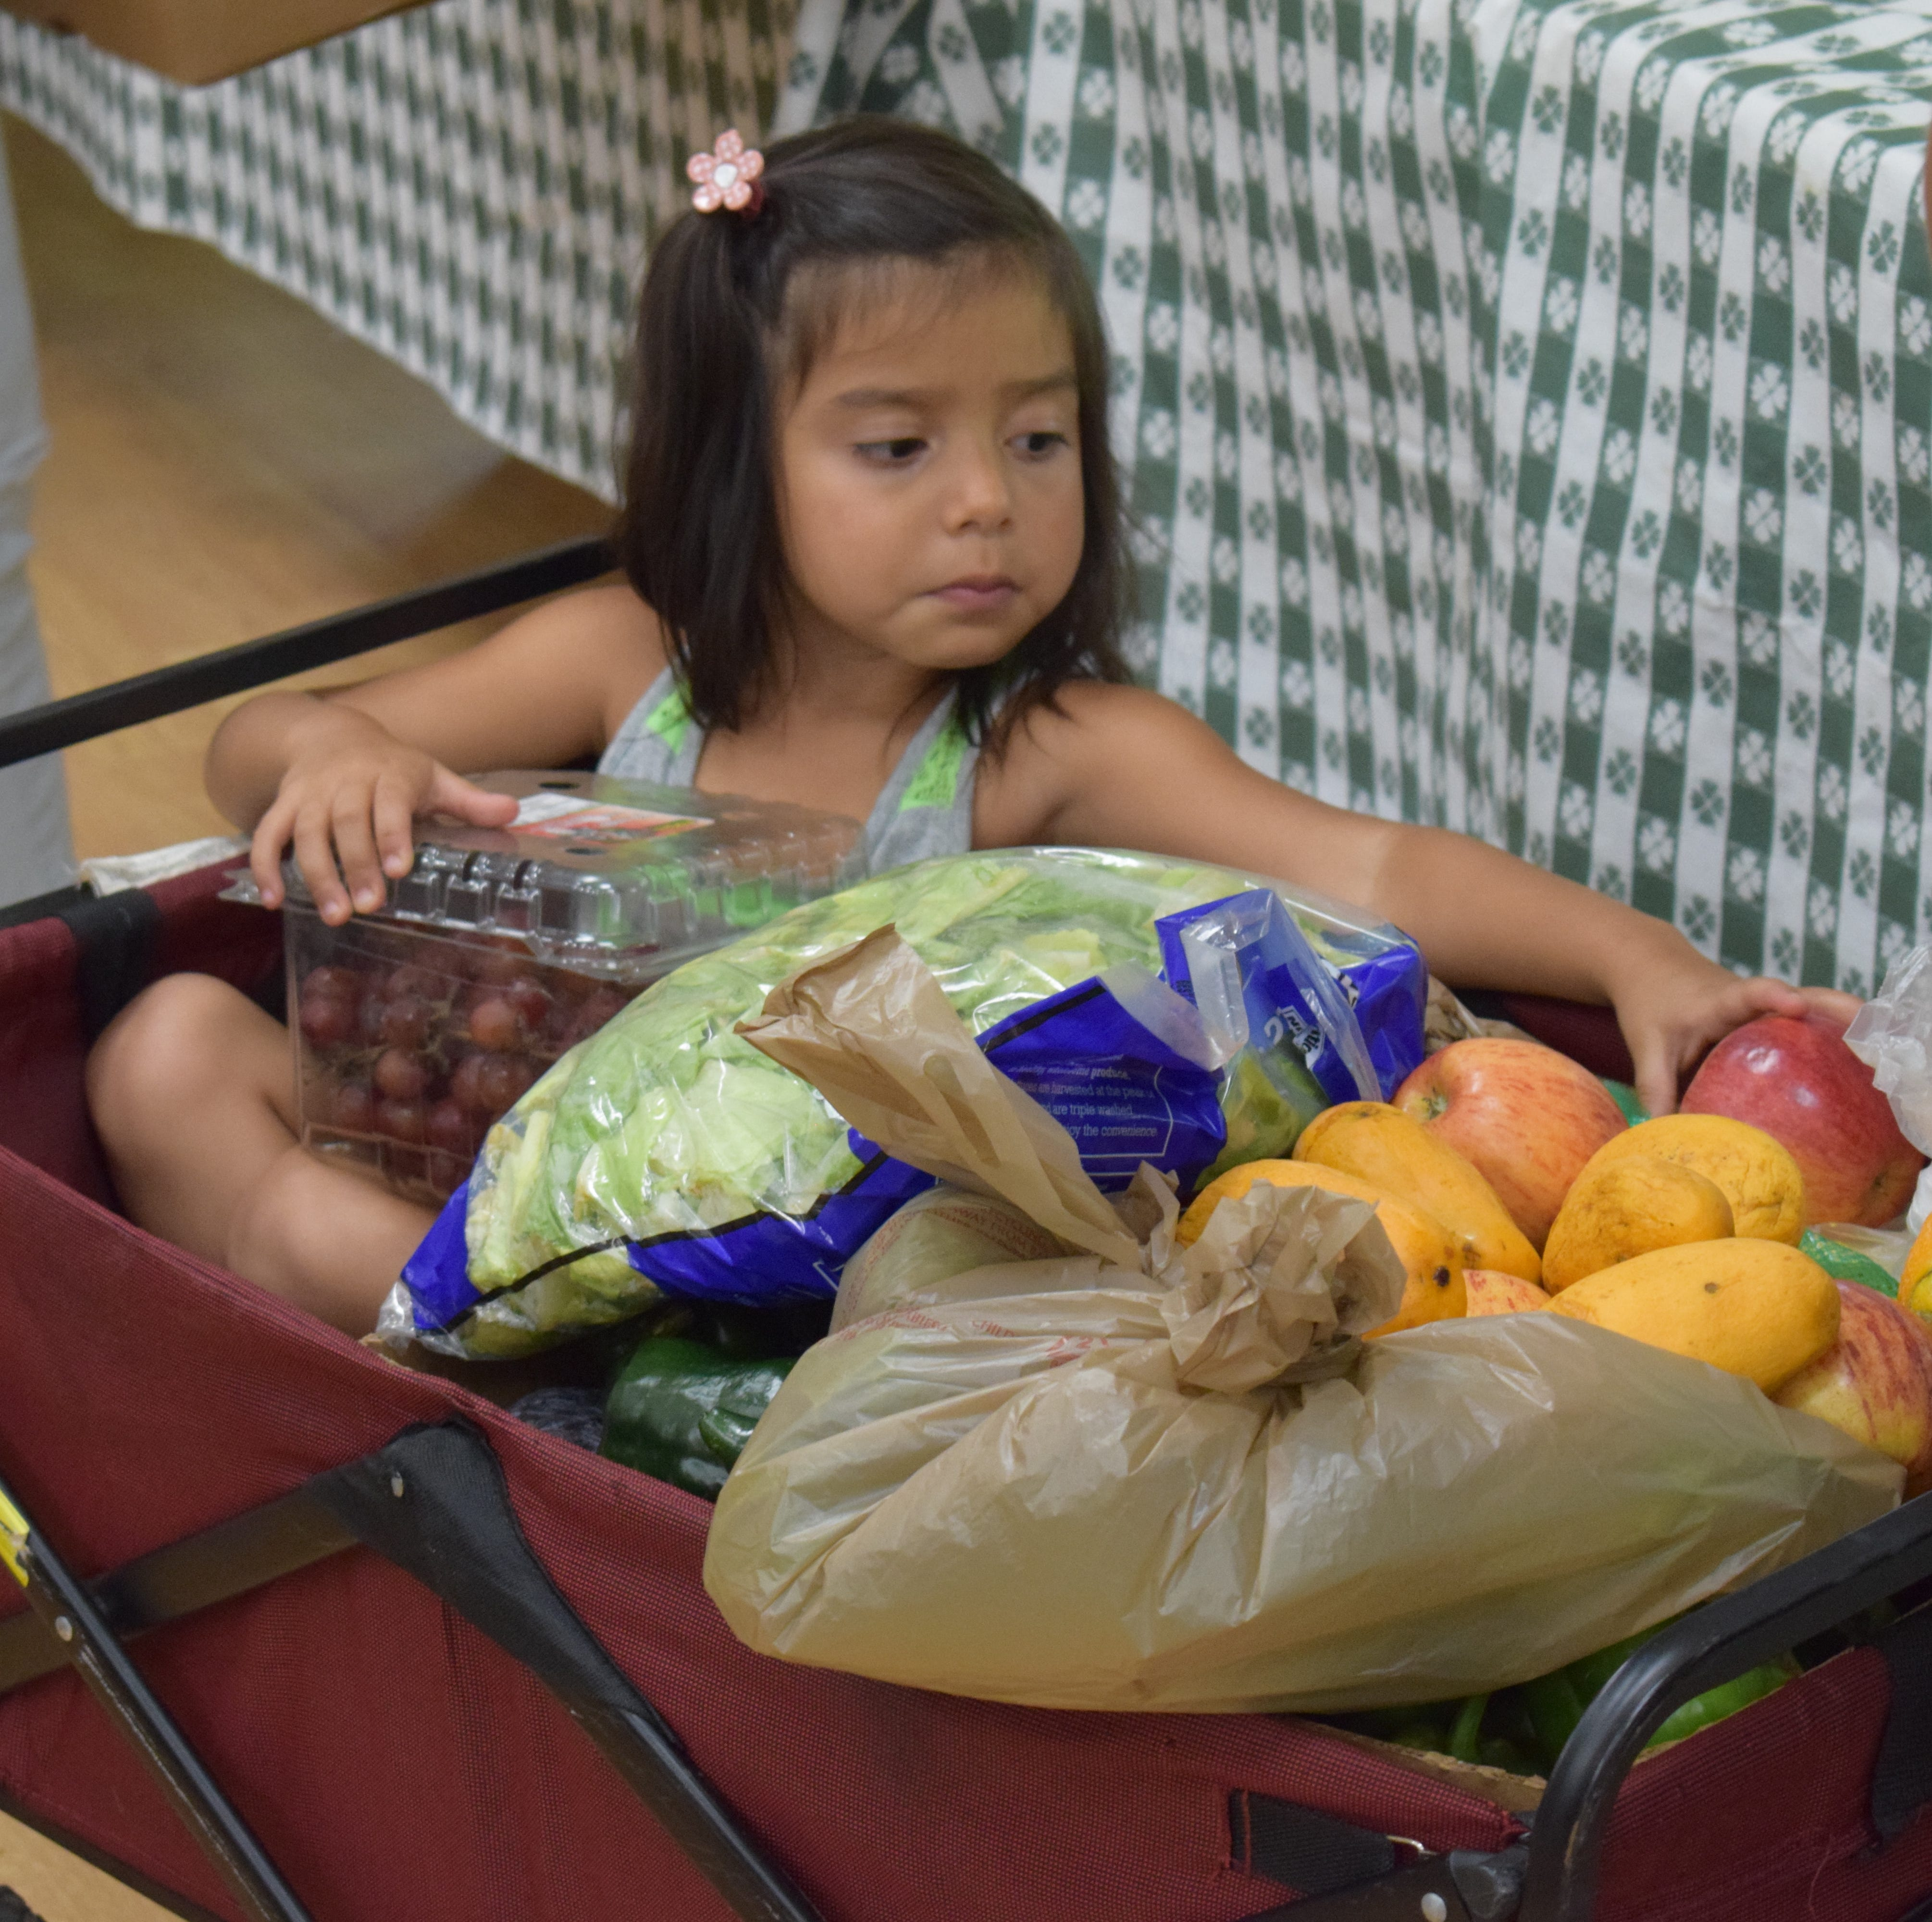 Examining the implications of hunger in the community